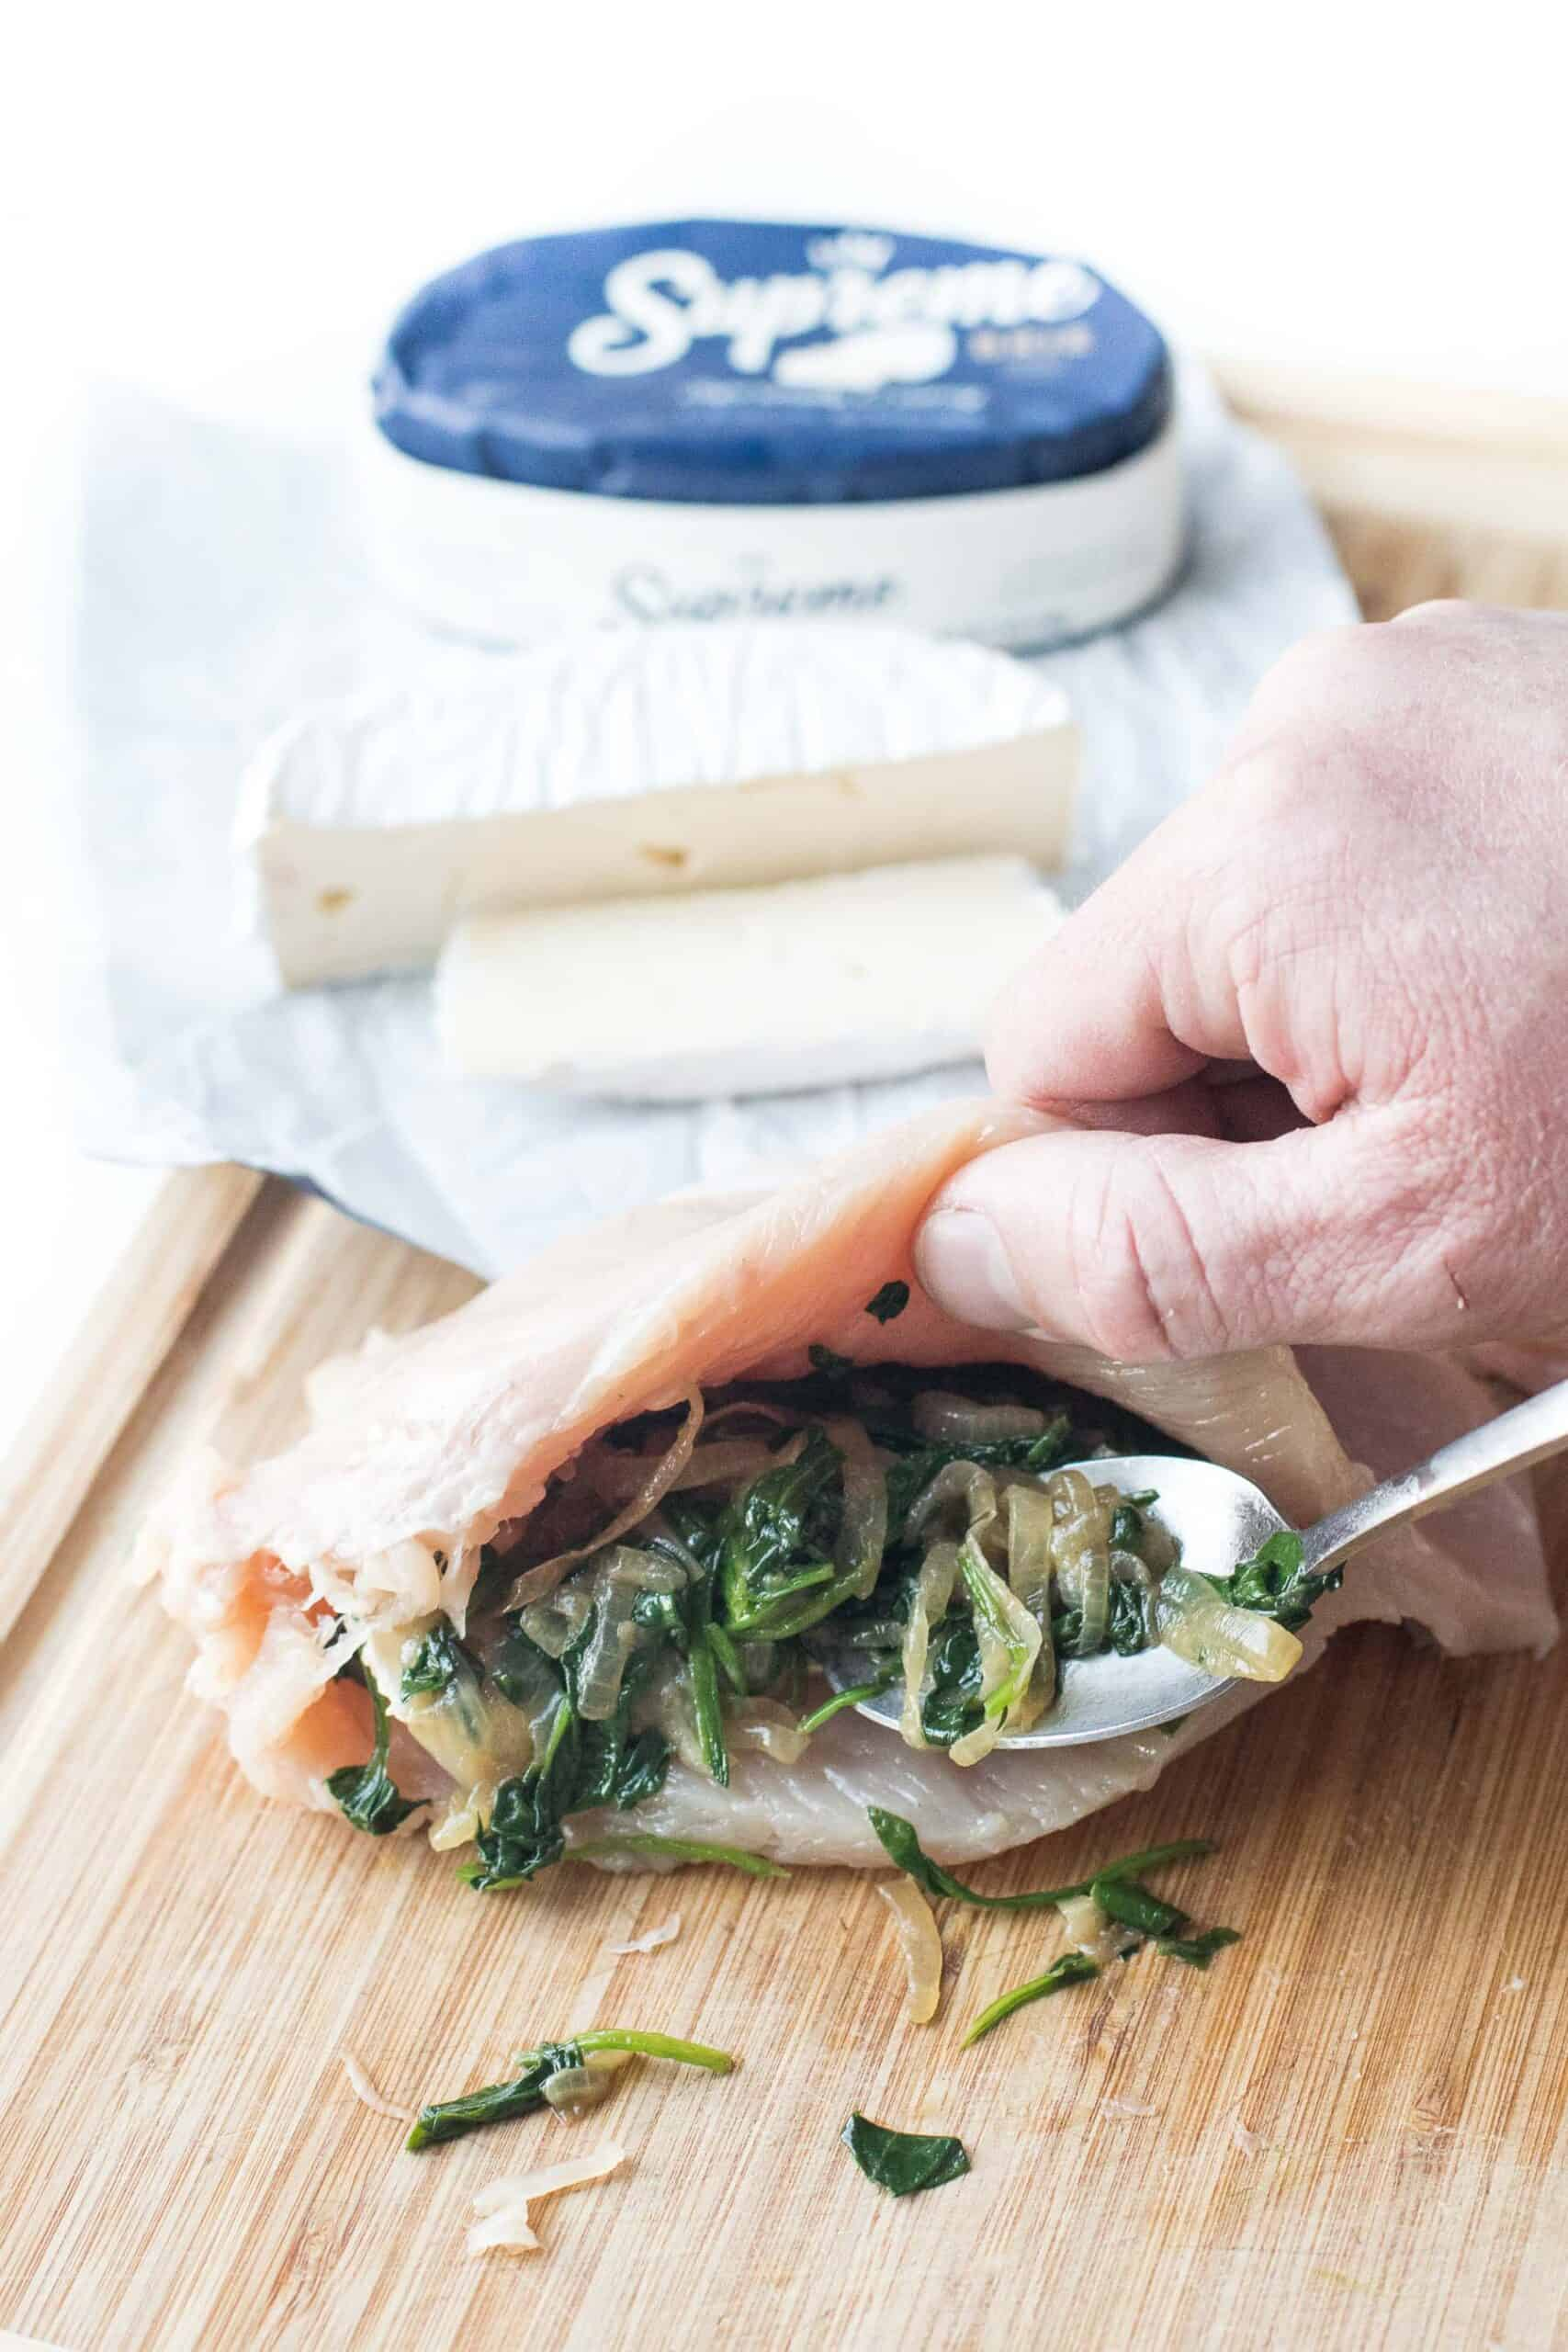 stuffing chicken breast with brie cheese and spinach